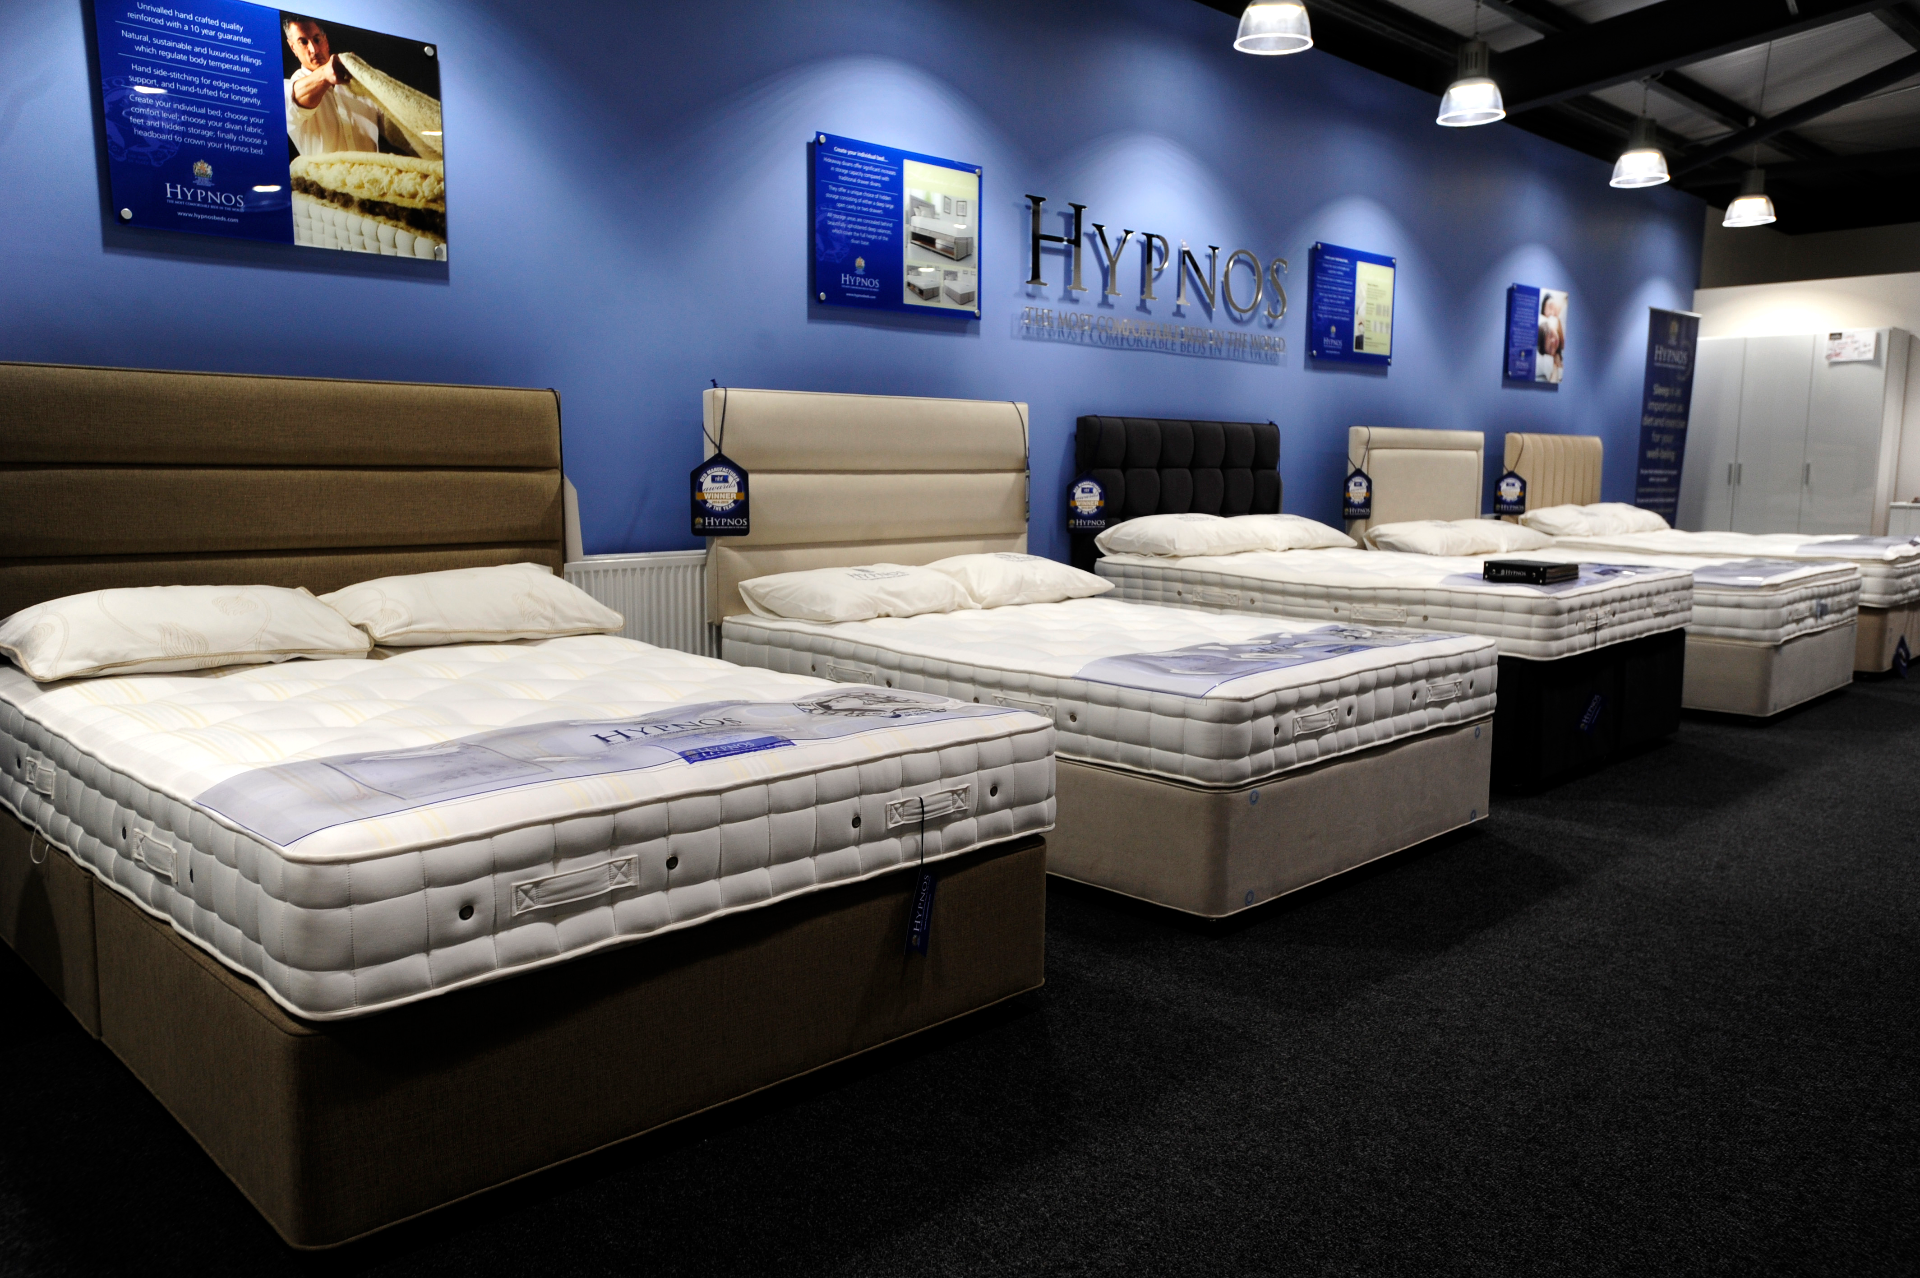 Our Hypnos Bed Gallery